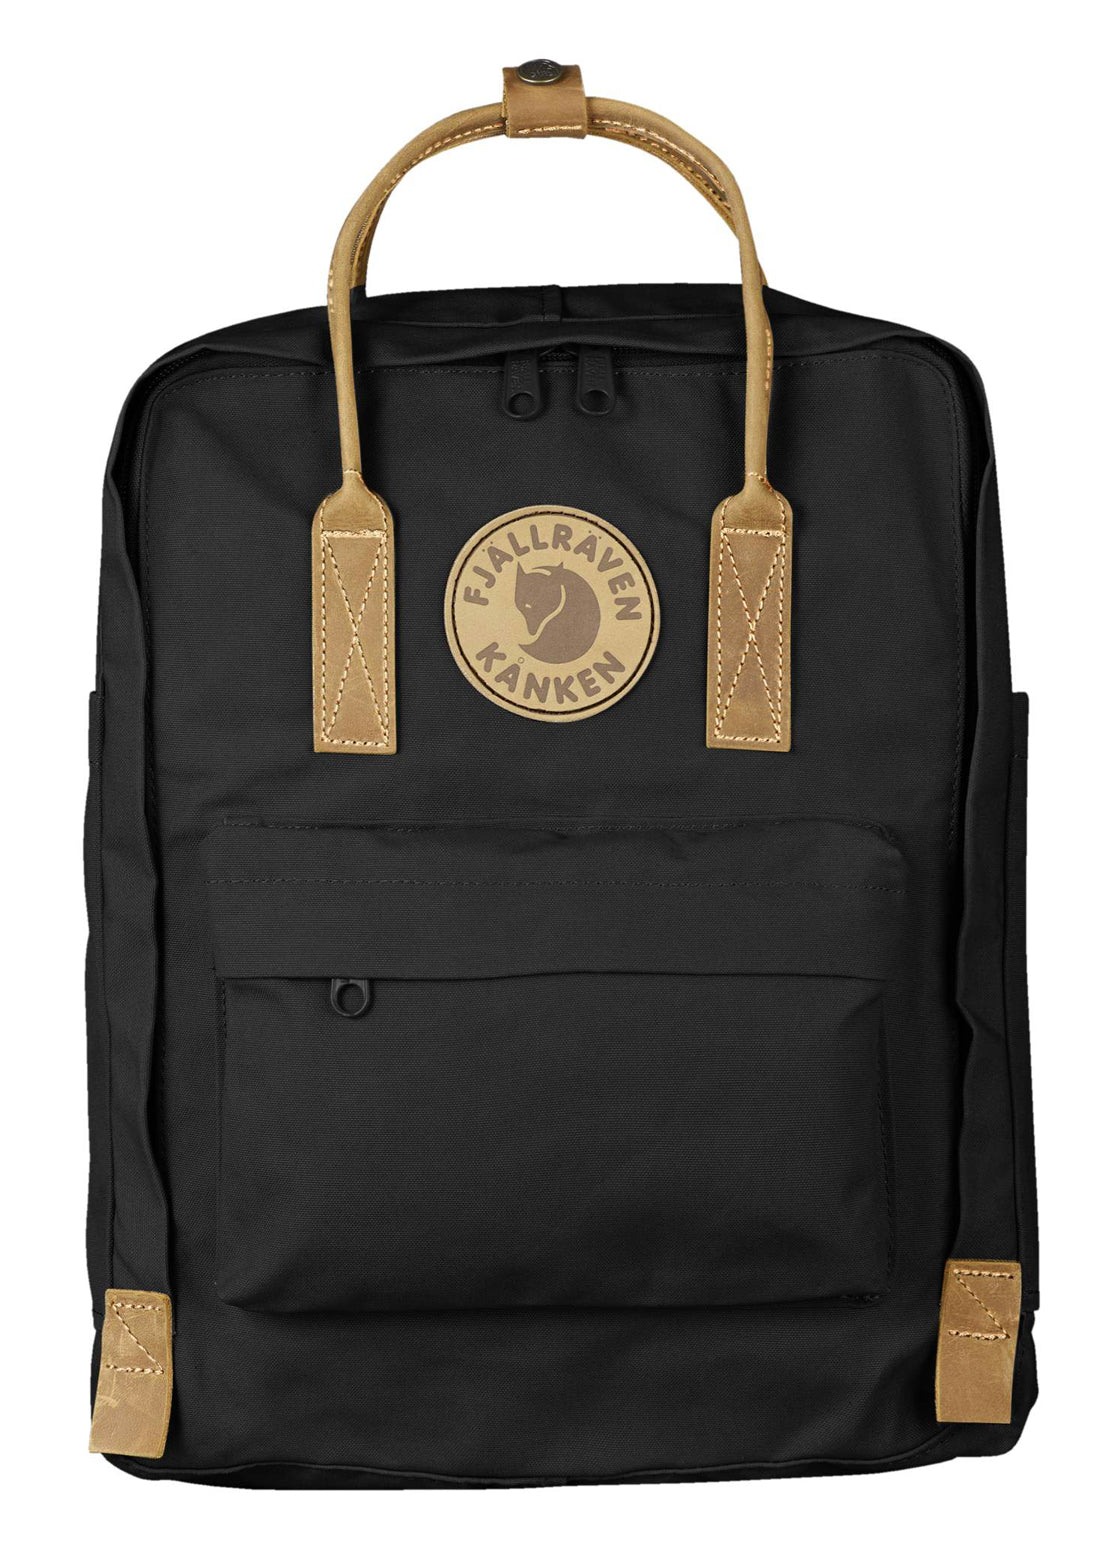 Fjallraven Kanken No.2 Backpack Black/Tan